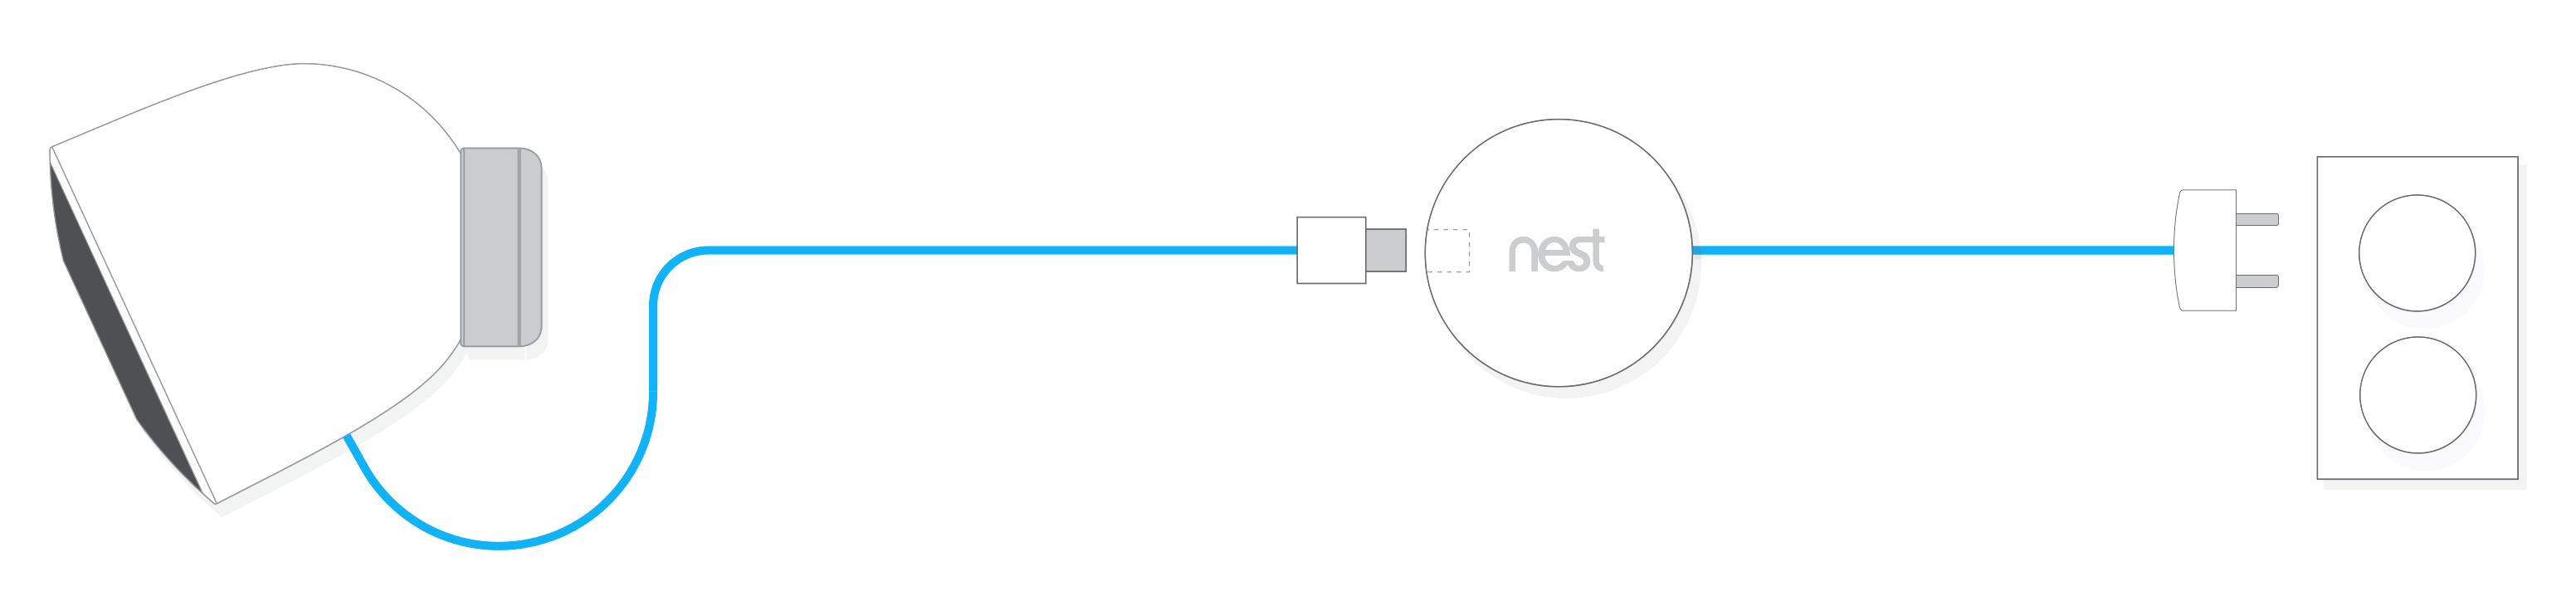 How To Install Your Outdoor Nest Cam - Nest Protect Wiring Diagram